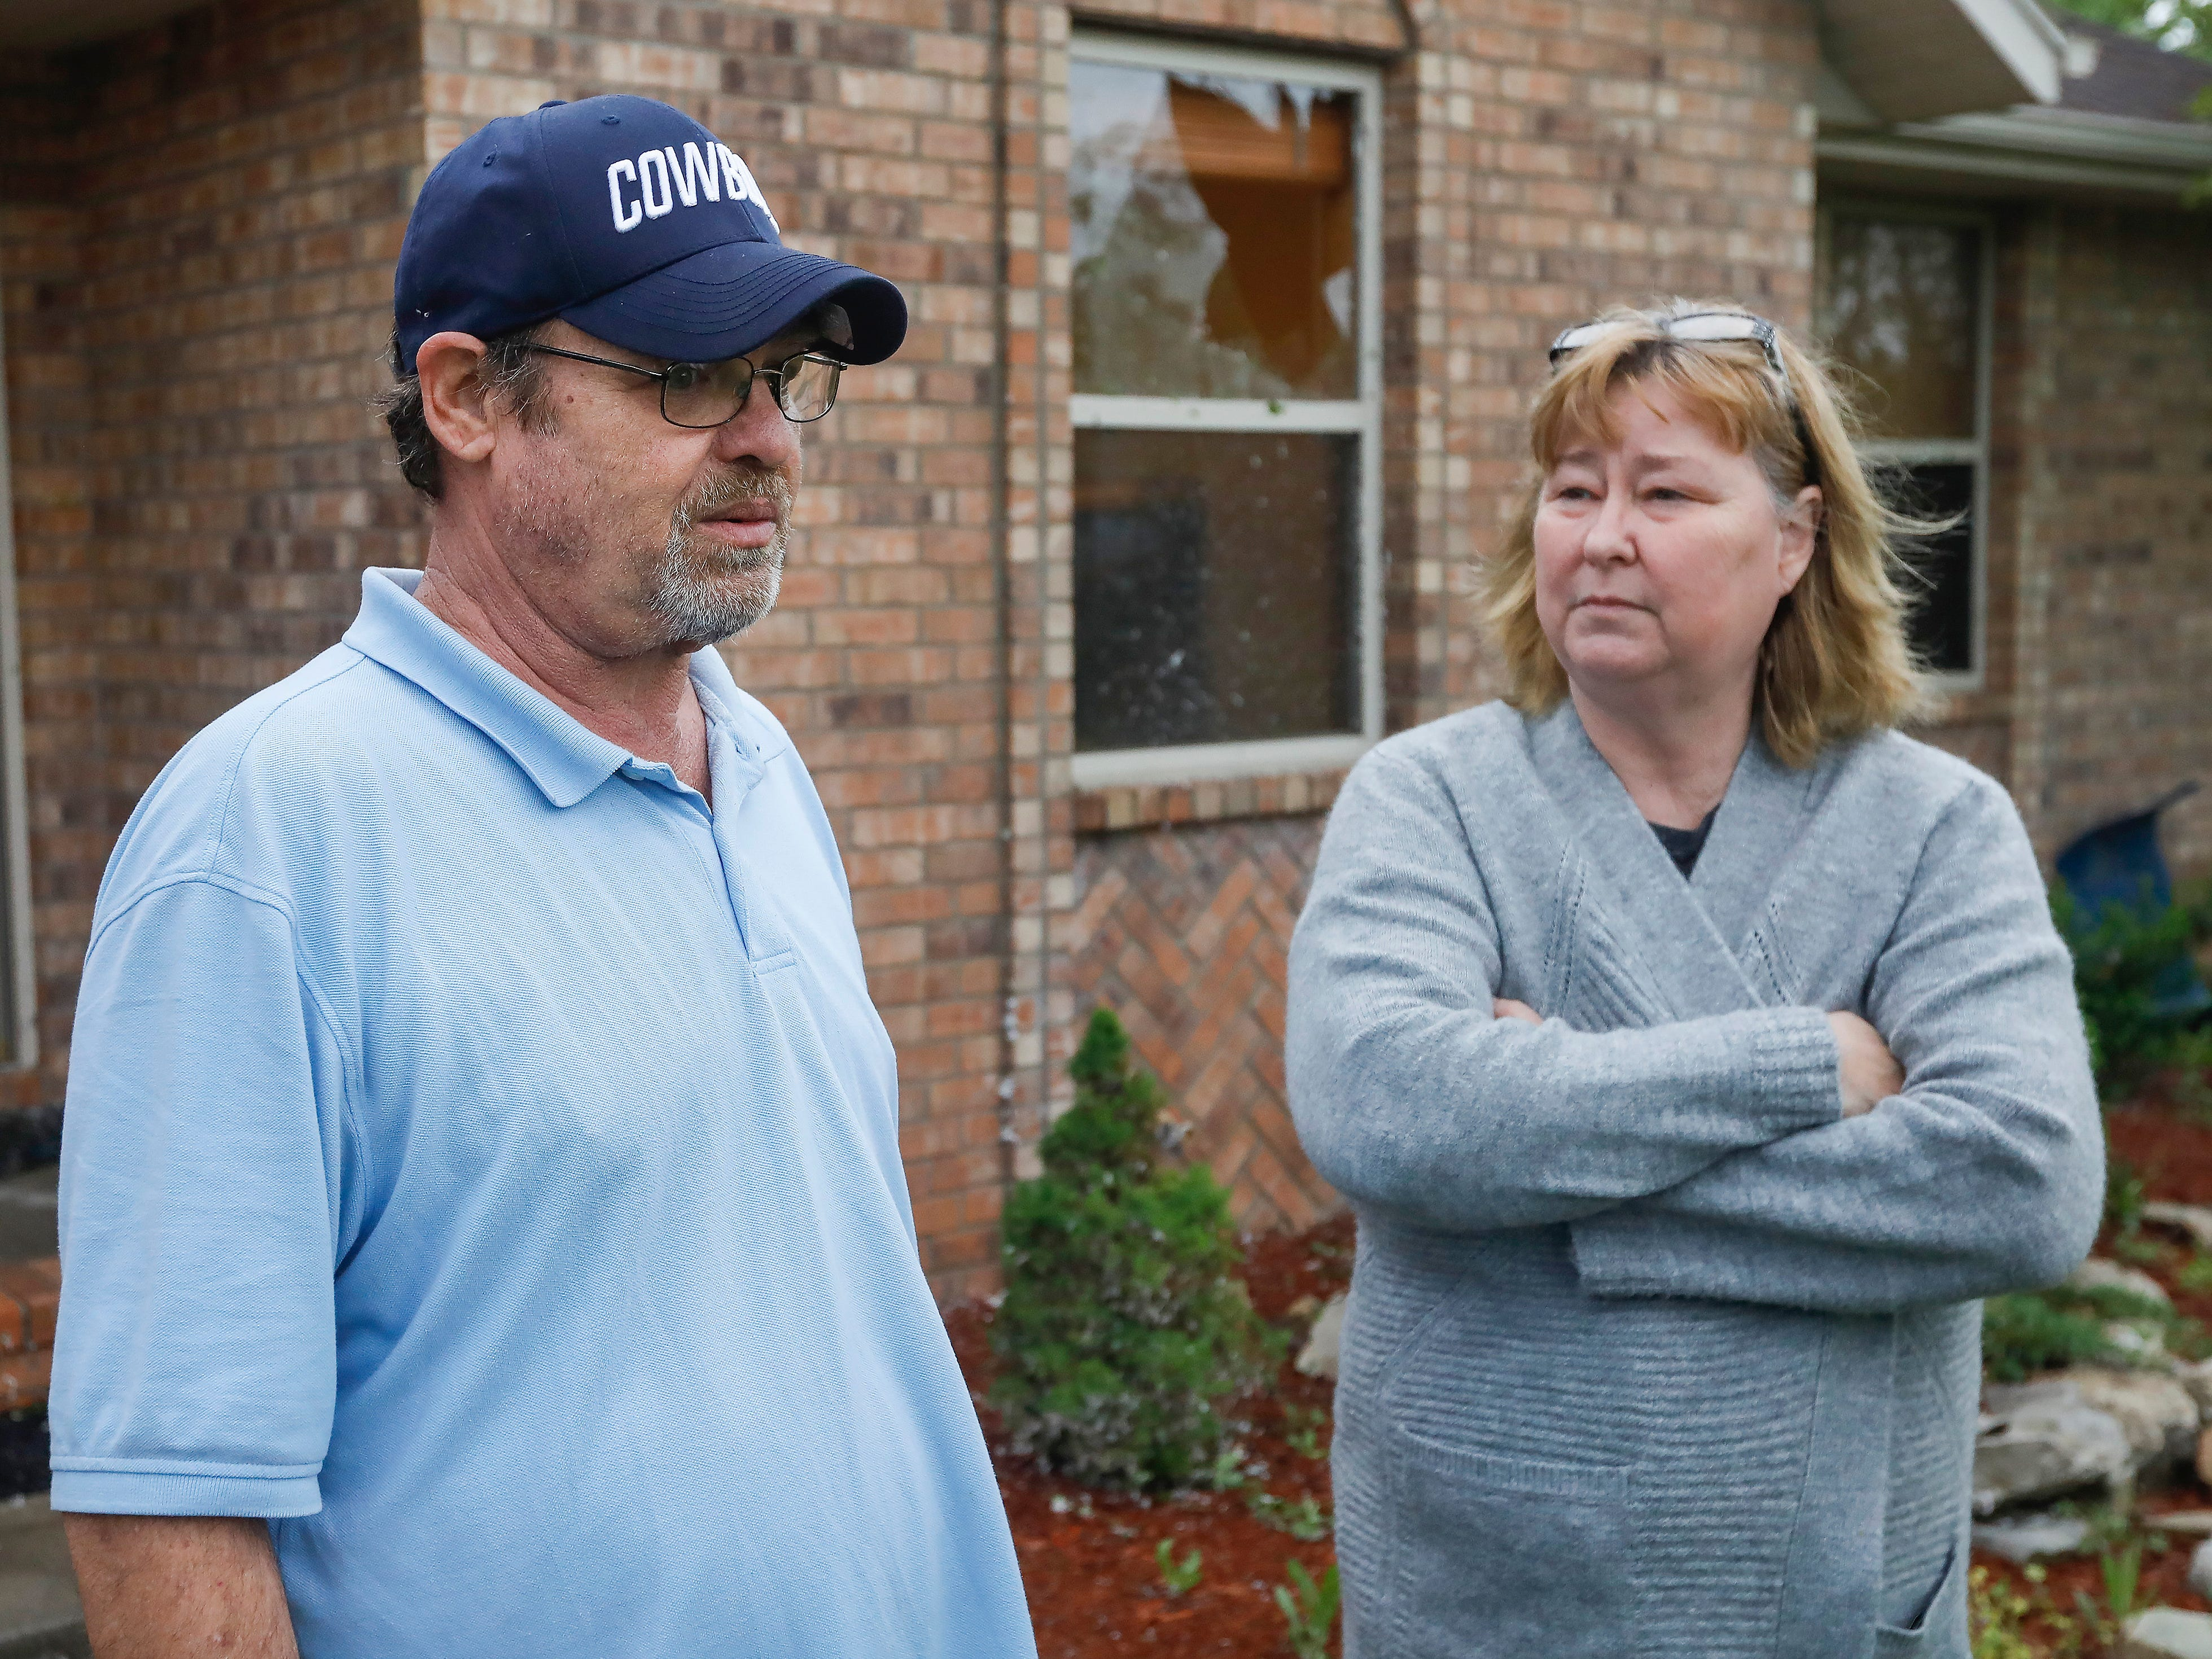 Steve and Kay Byard talk about how they got into the storm shelter in their garage in the Waterford neighborhood during a likely tornado that hit Ozark on Tuesday, April 30, 2019.